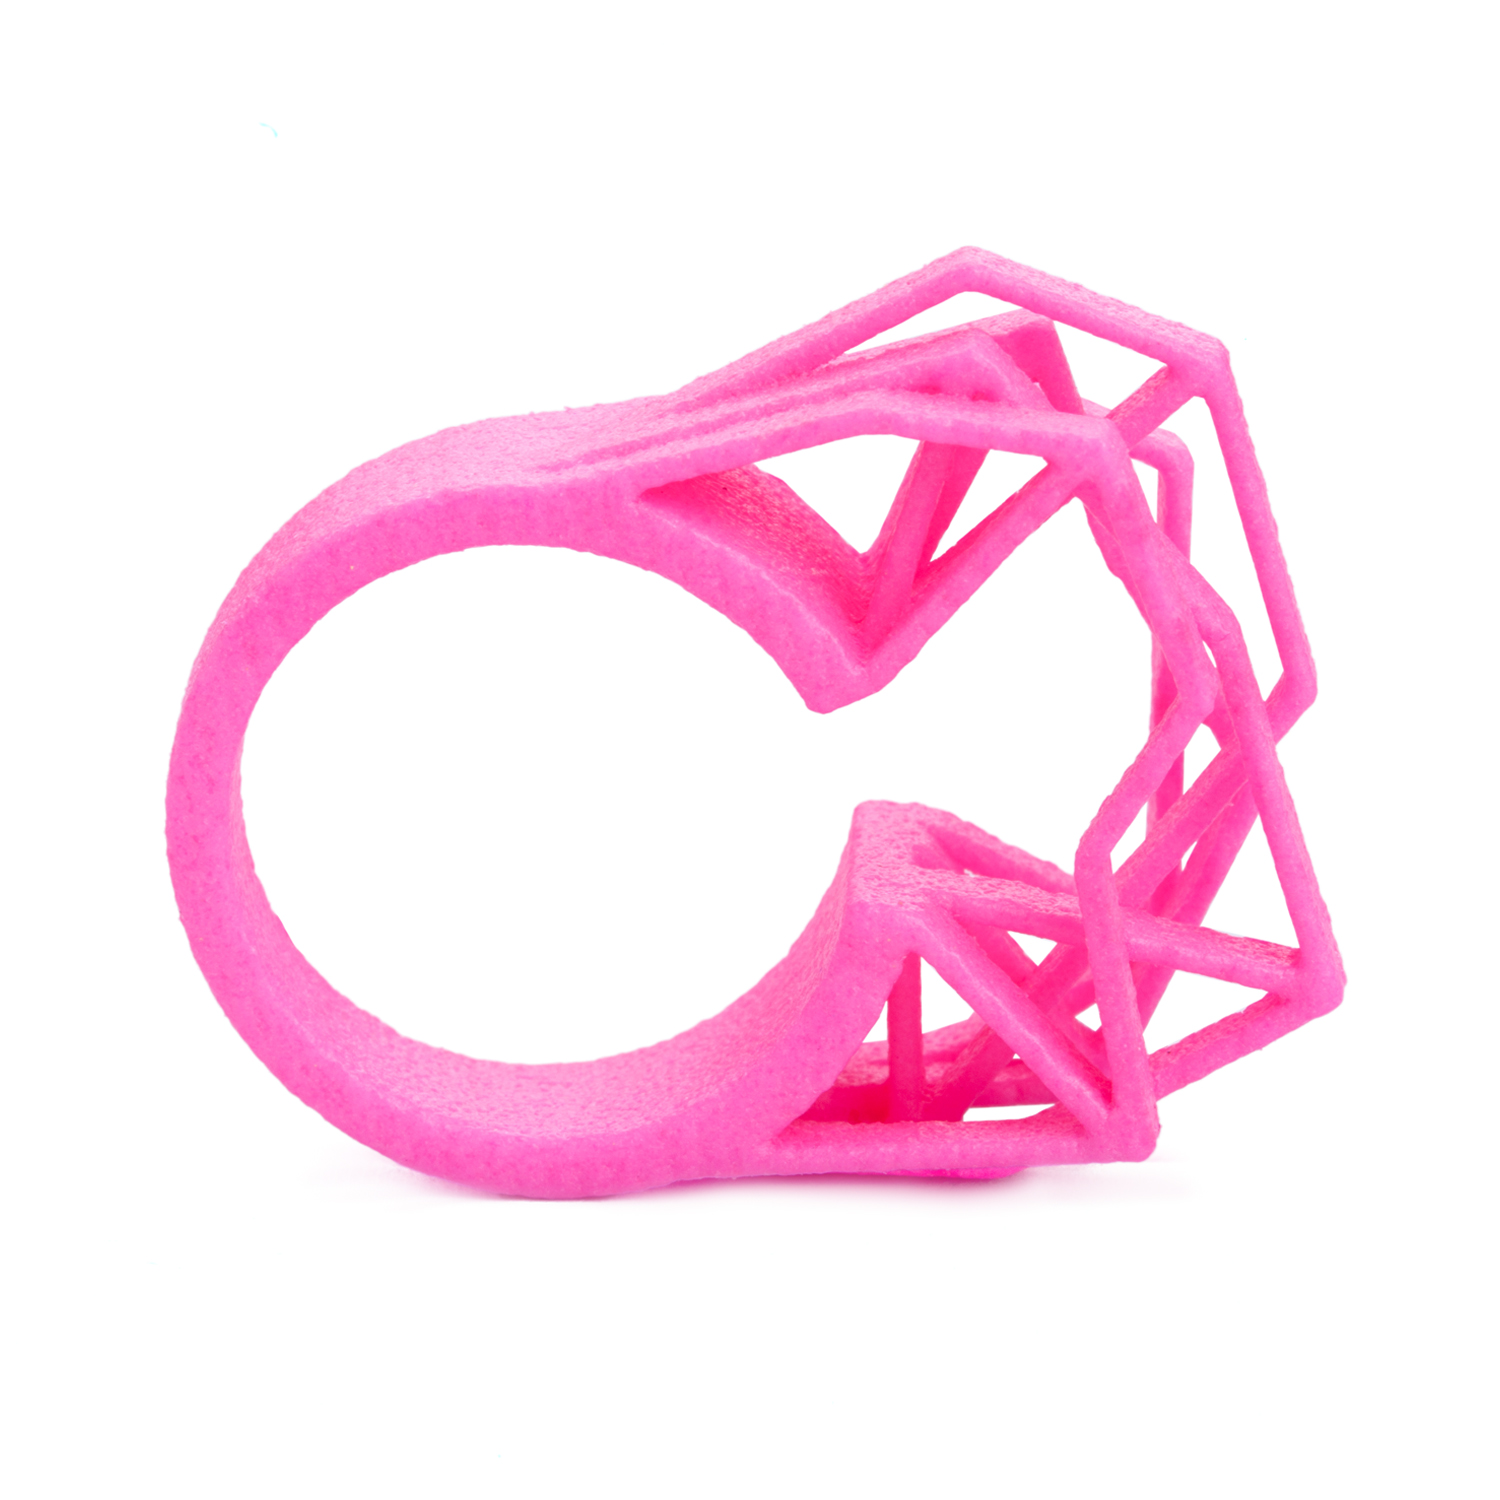 Solitaire ring NEON, 3D printed nylon, pink